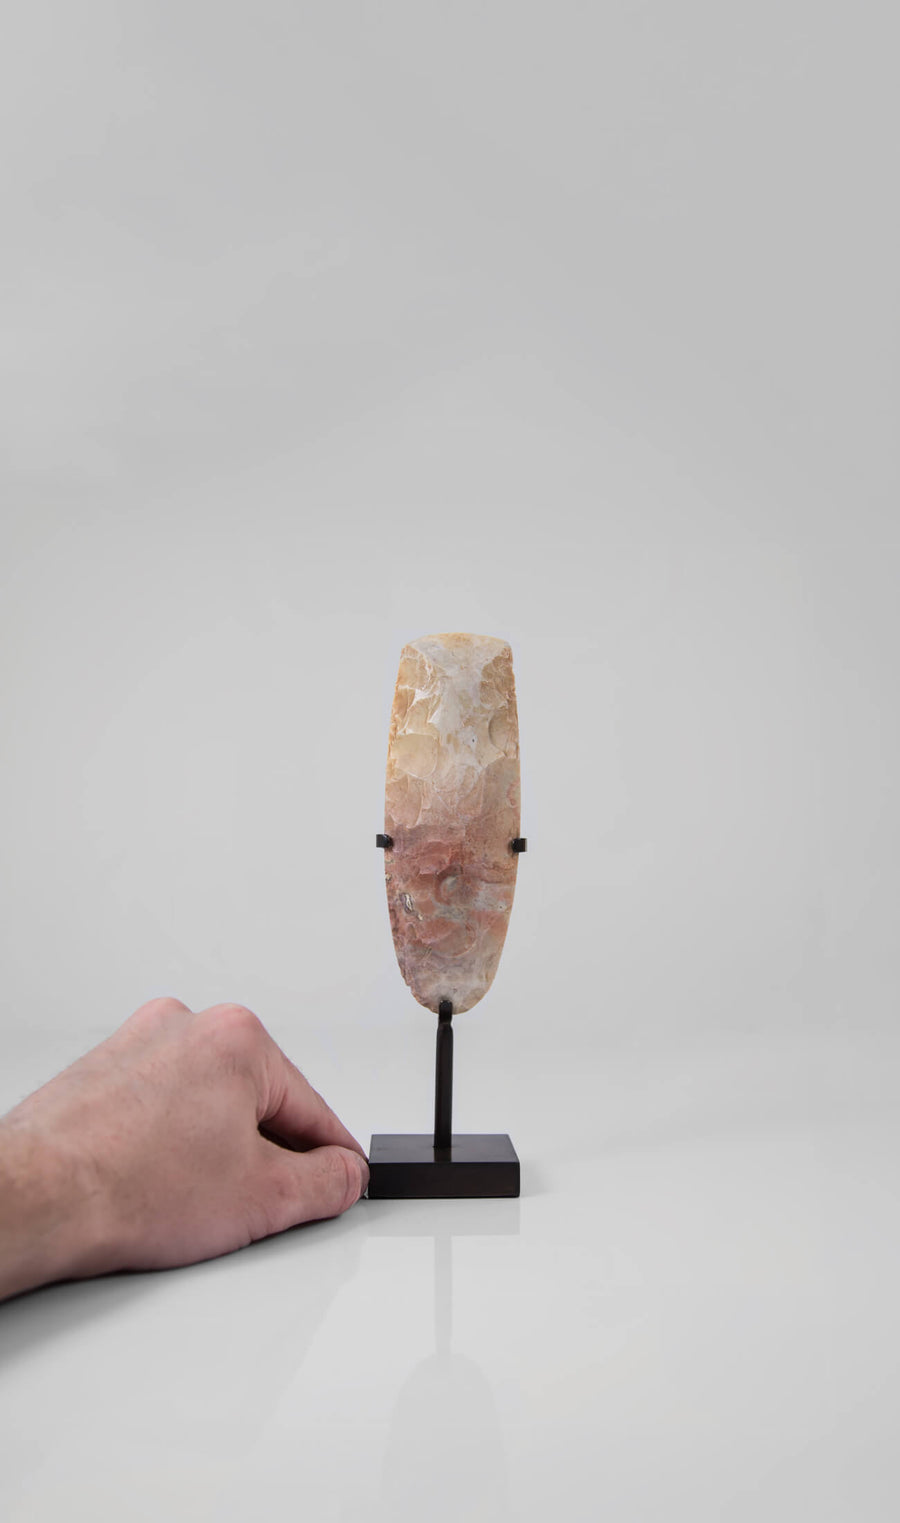 A unique and authentic Neolithic hand axe measuring 192mm is an intriguing craft created by an ancient hand